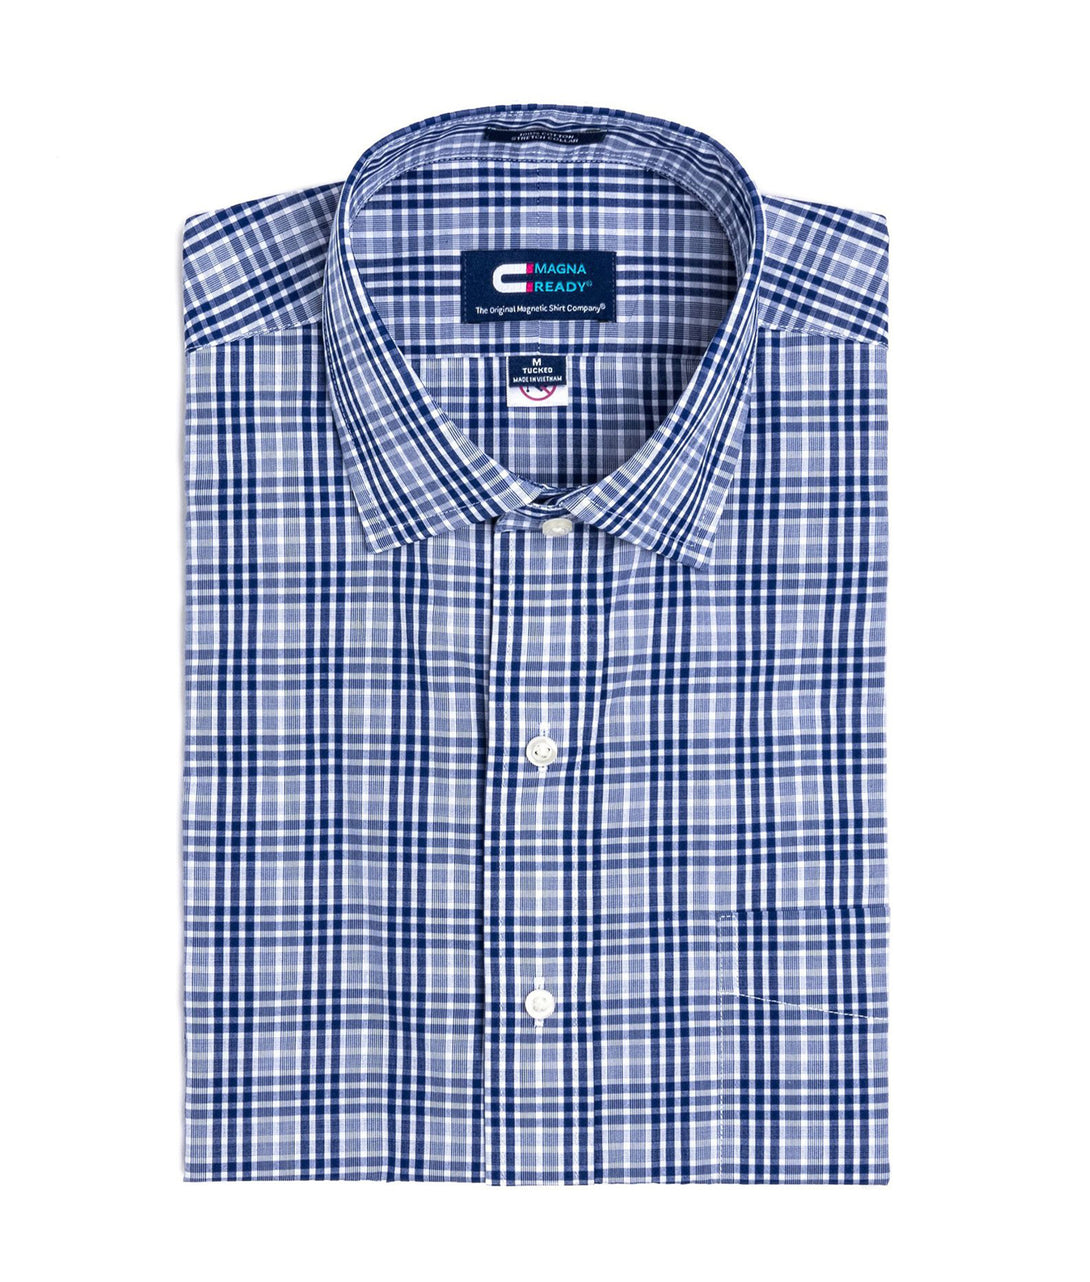 Navy and White Plaid Short Sleeve Shirt with Magnetic Closures | JUNIPERunltd